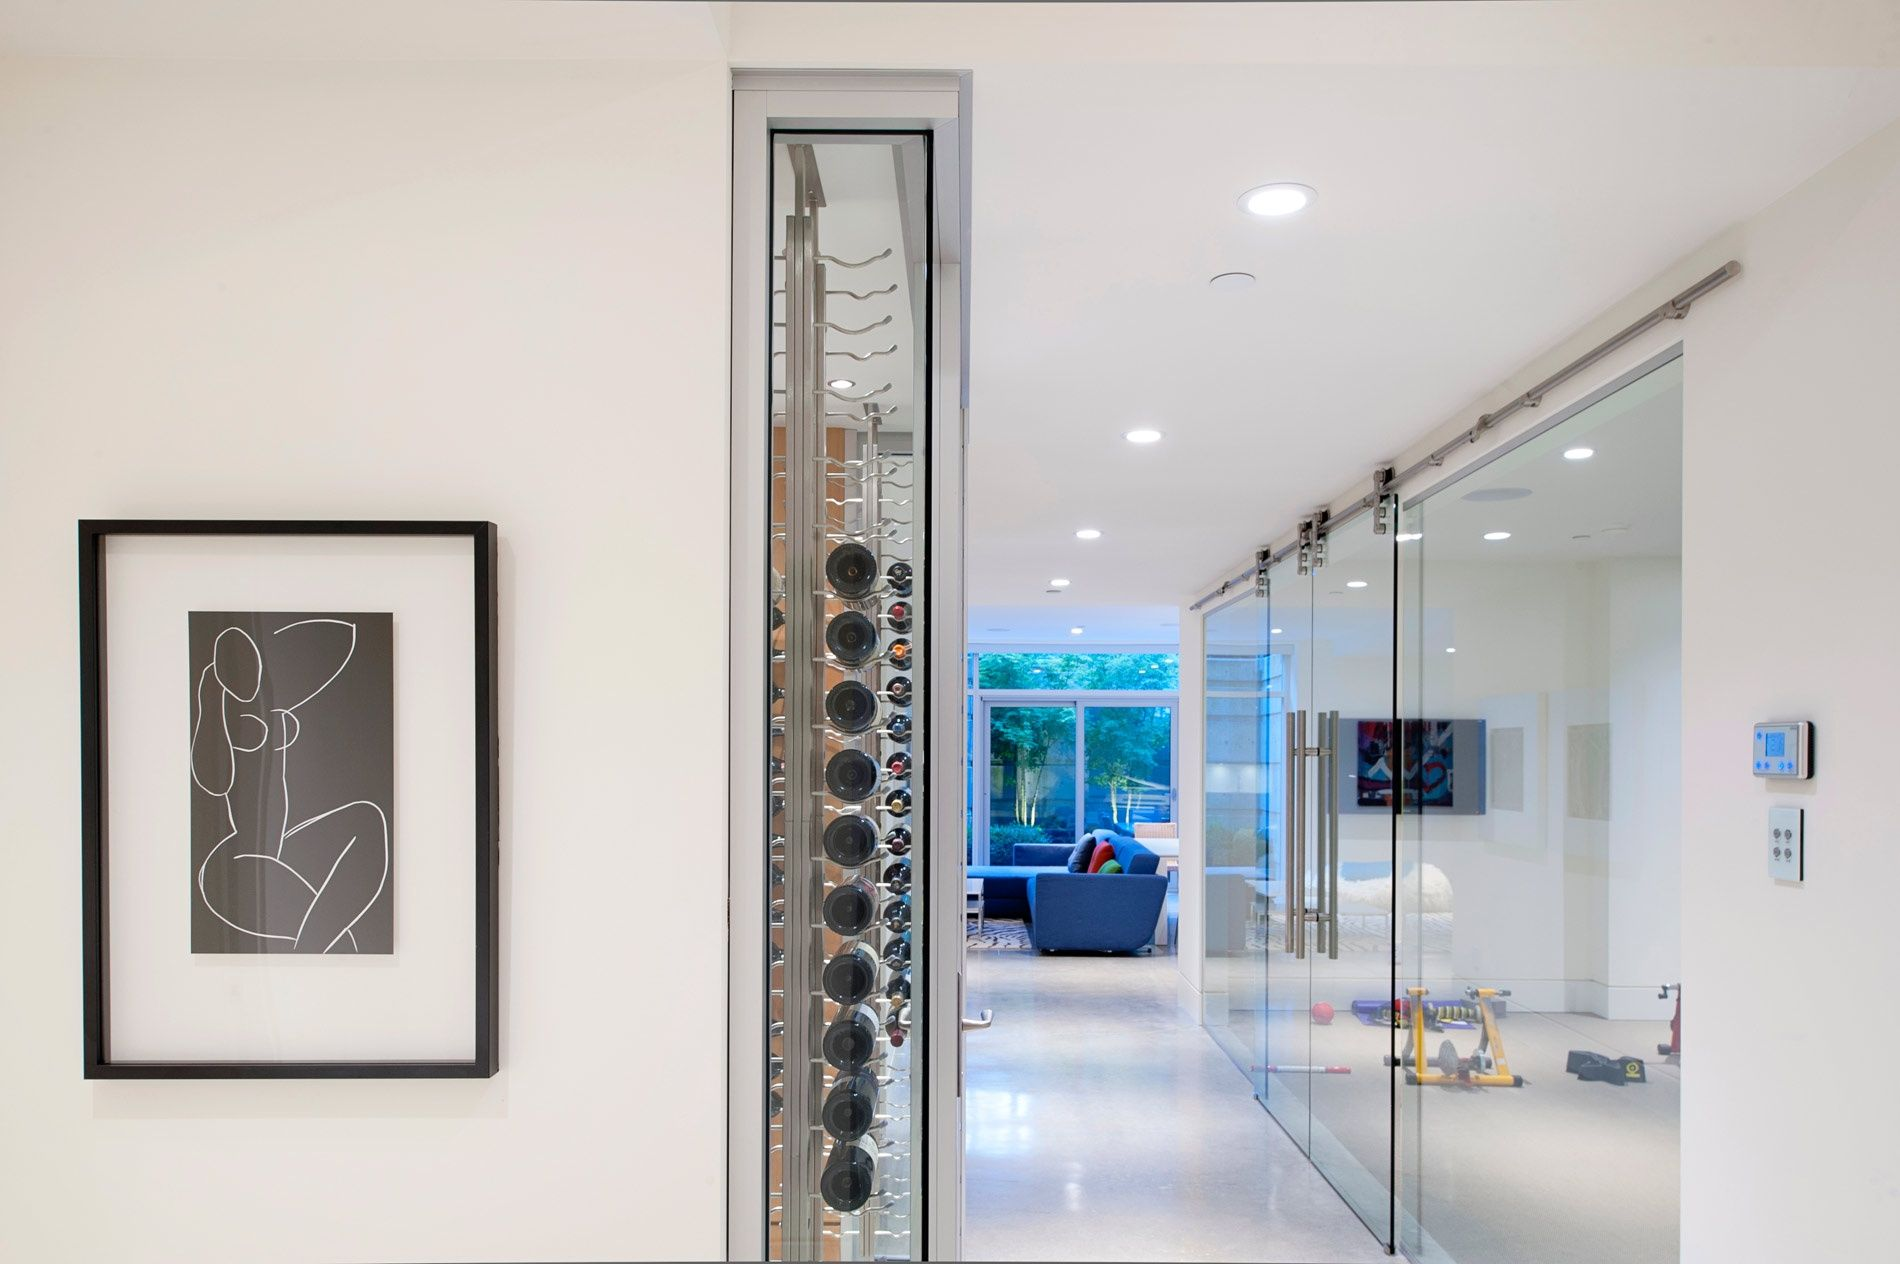 Interior Glass Doors: Best Design Ideas and Application. Ultramodern spacious hall with the glass delimited zones